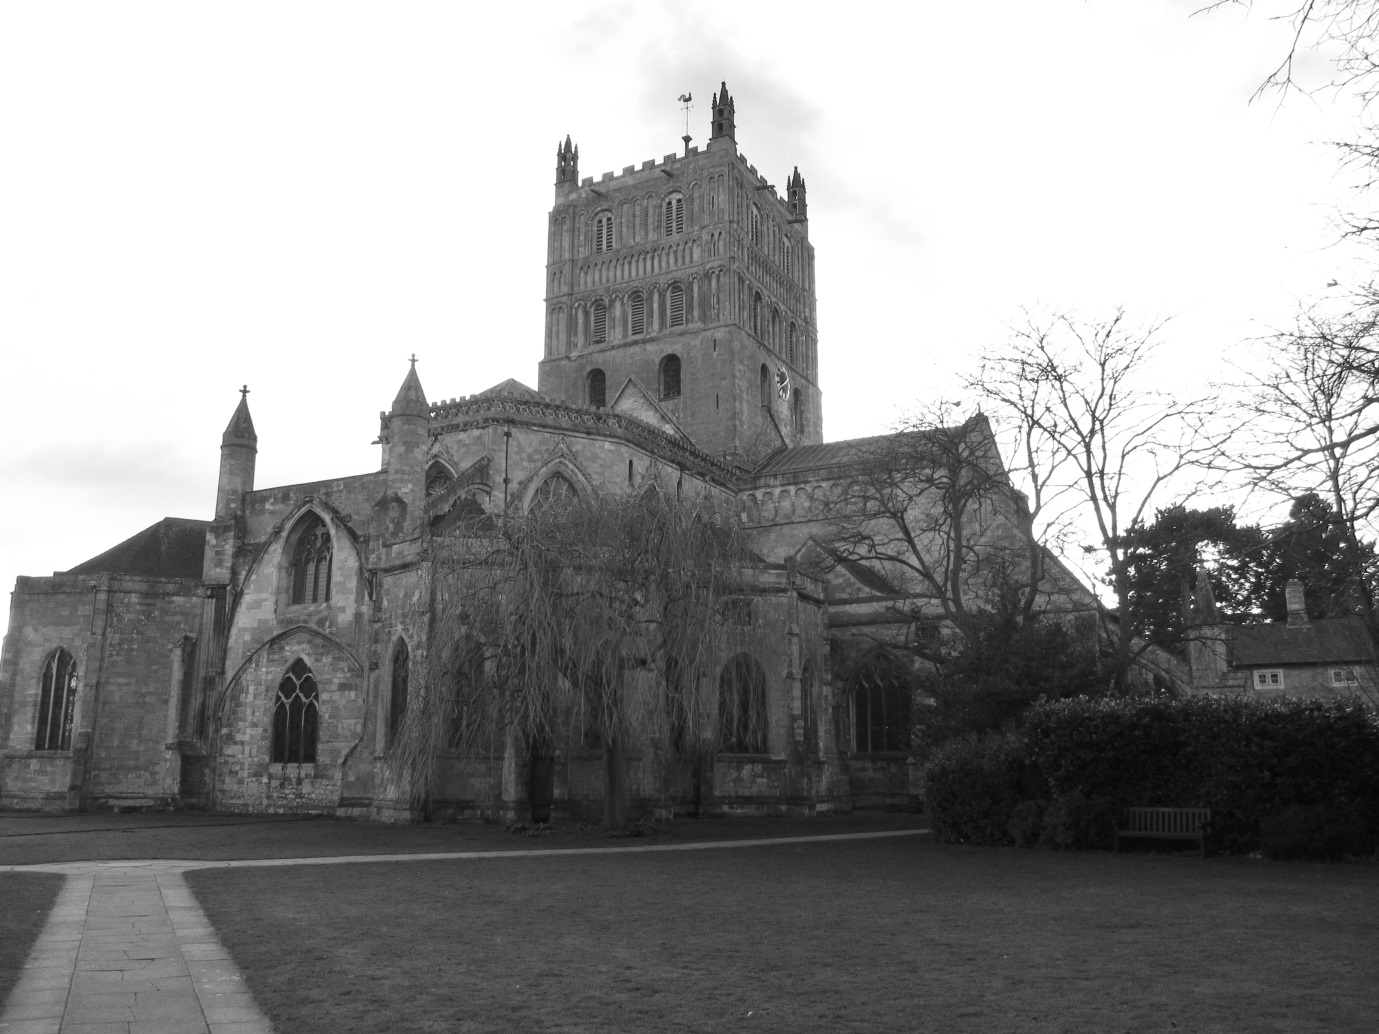 East-end-of-Tewkesbury-Abbey.-Note-the-great-Romanesque-Tower.-©-Tudor-Times-2015